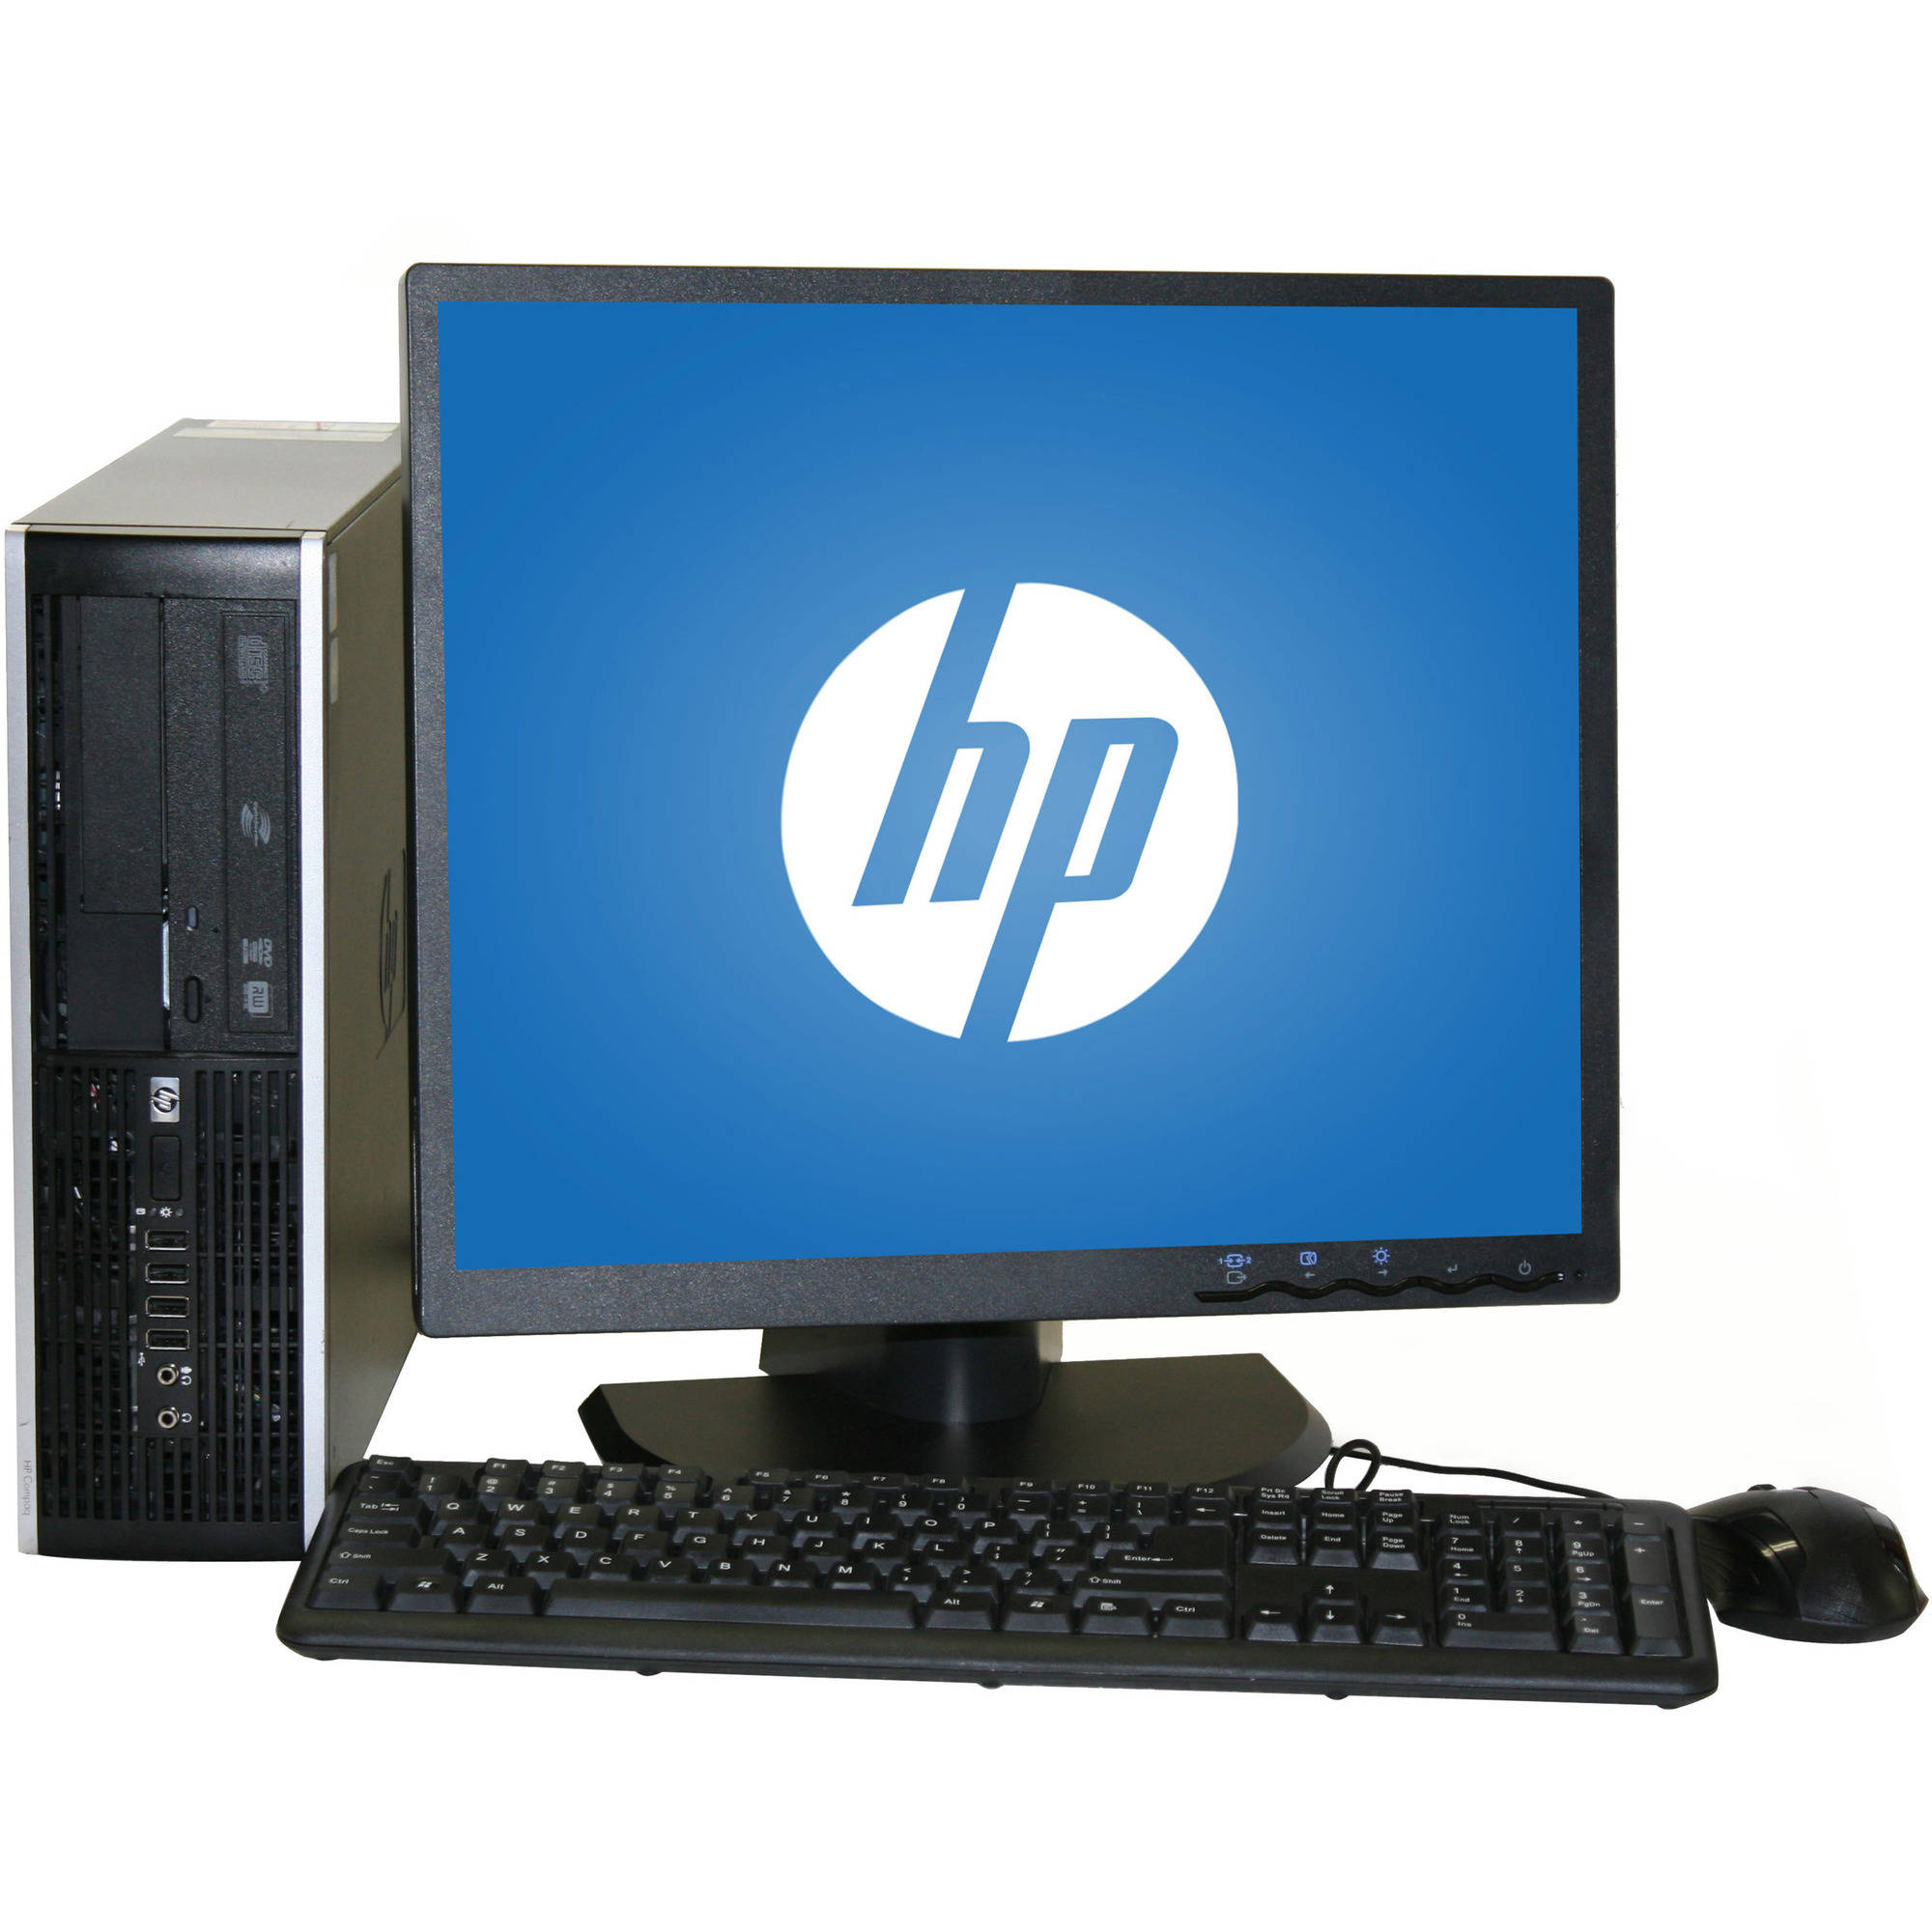 "Refurbished HP 8000 Desktop PC with Intel Core 2 Duo Processor, 8GB Memory, 19"" Monitor, 1TB Hard Drive and Windows 10 Home"